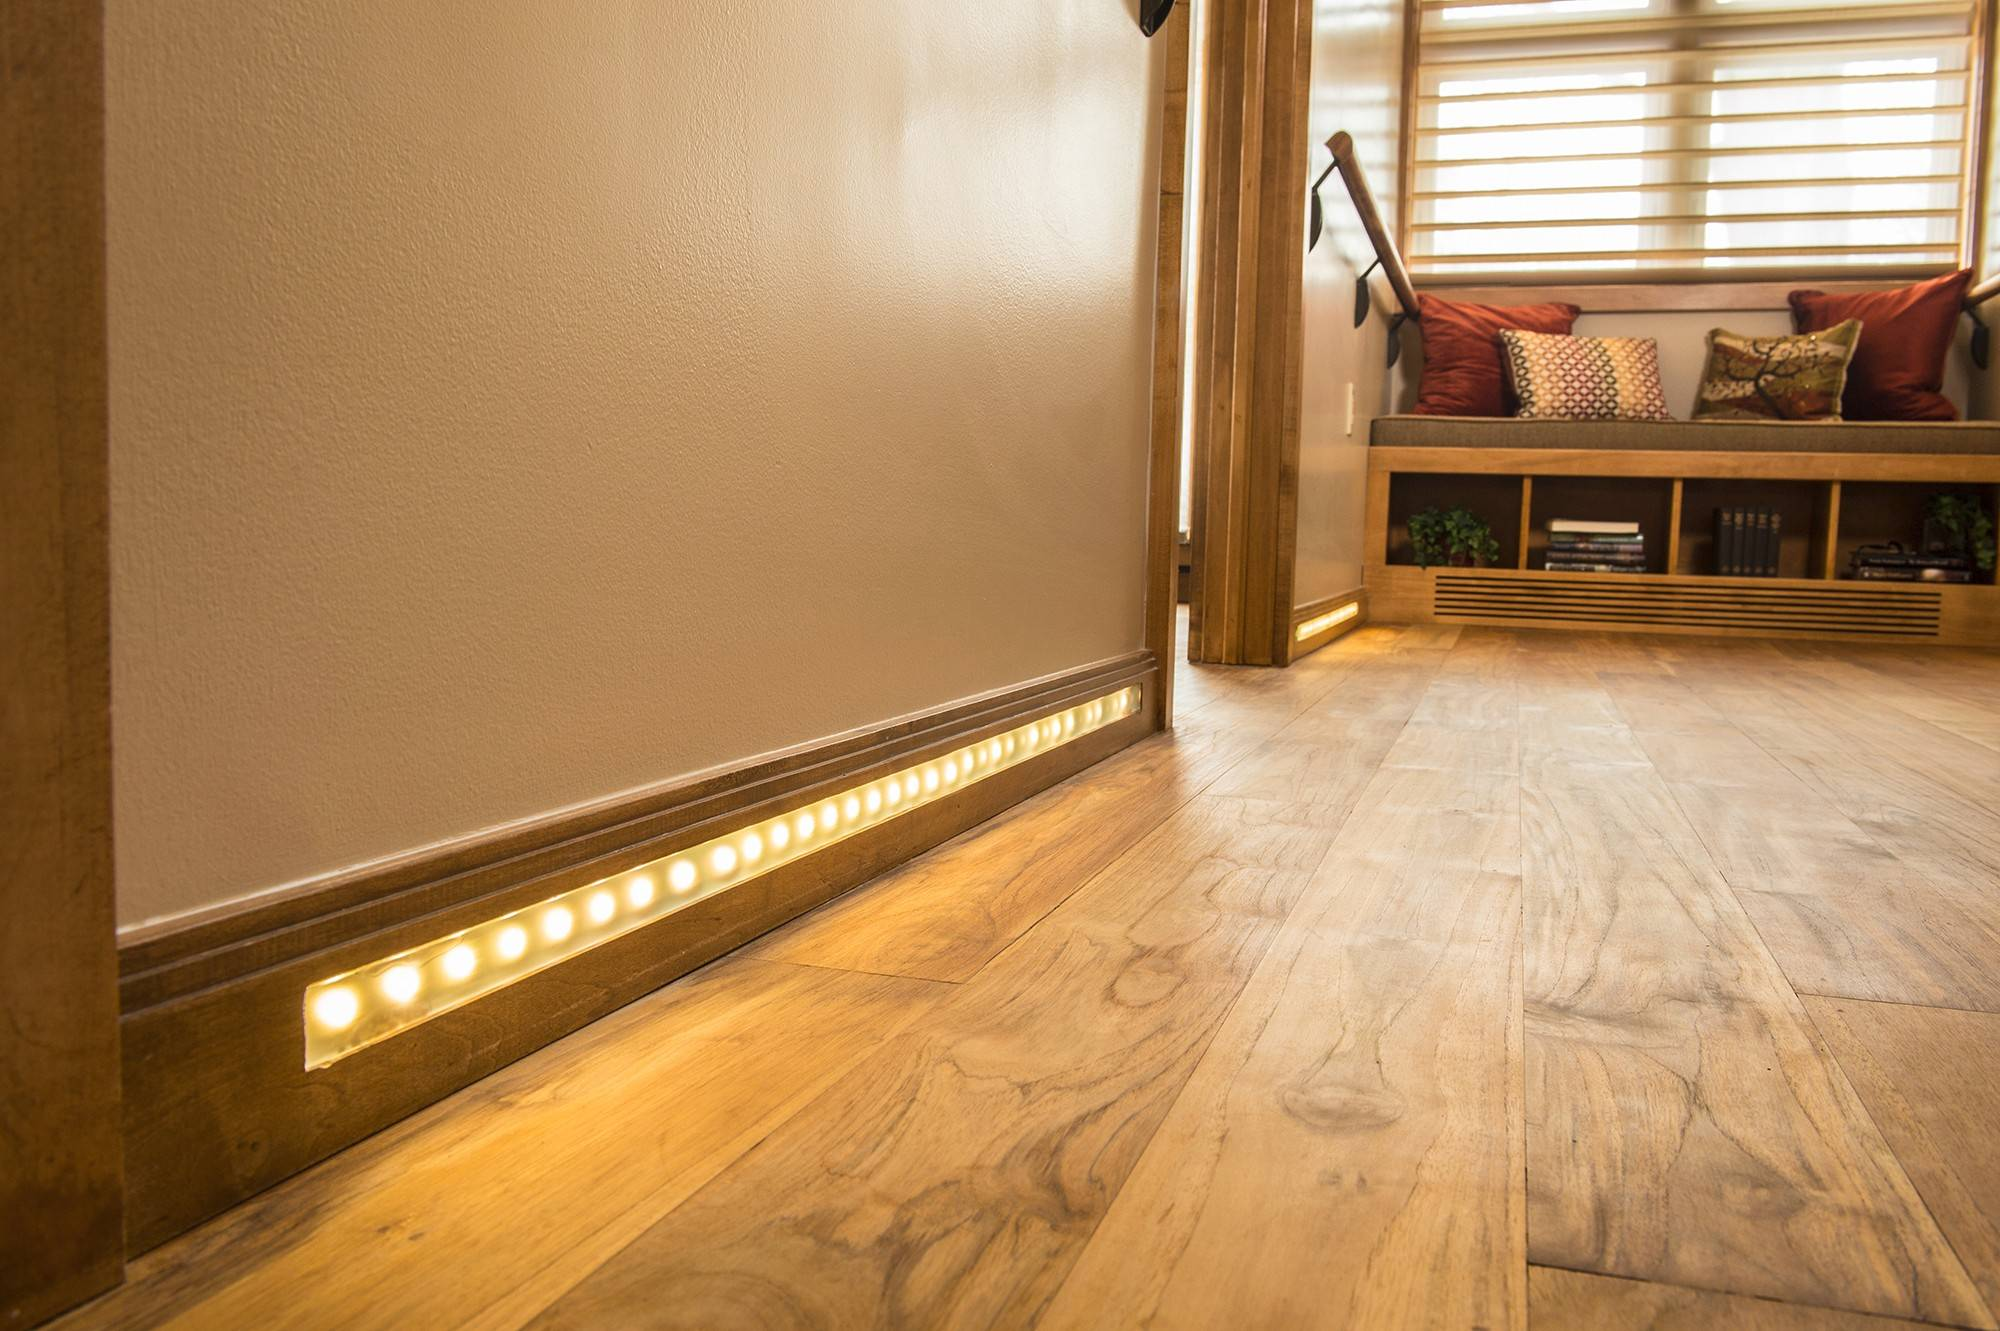 The hallway is illuminated 24 hours a day by low-voltage LED lighting strips in the baseboards. Brazilian teak handrails reflect the teak flooring, blending in instead of announcing that disabled children live here.